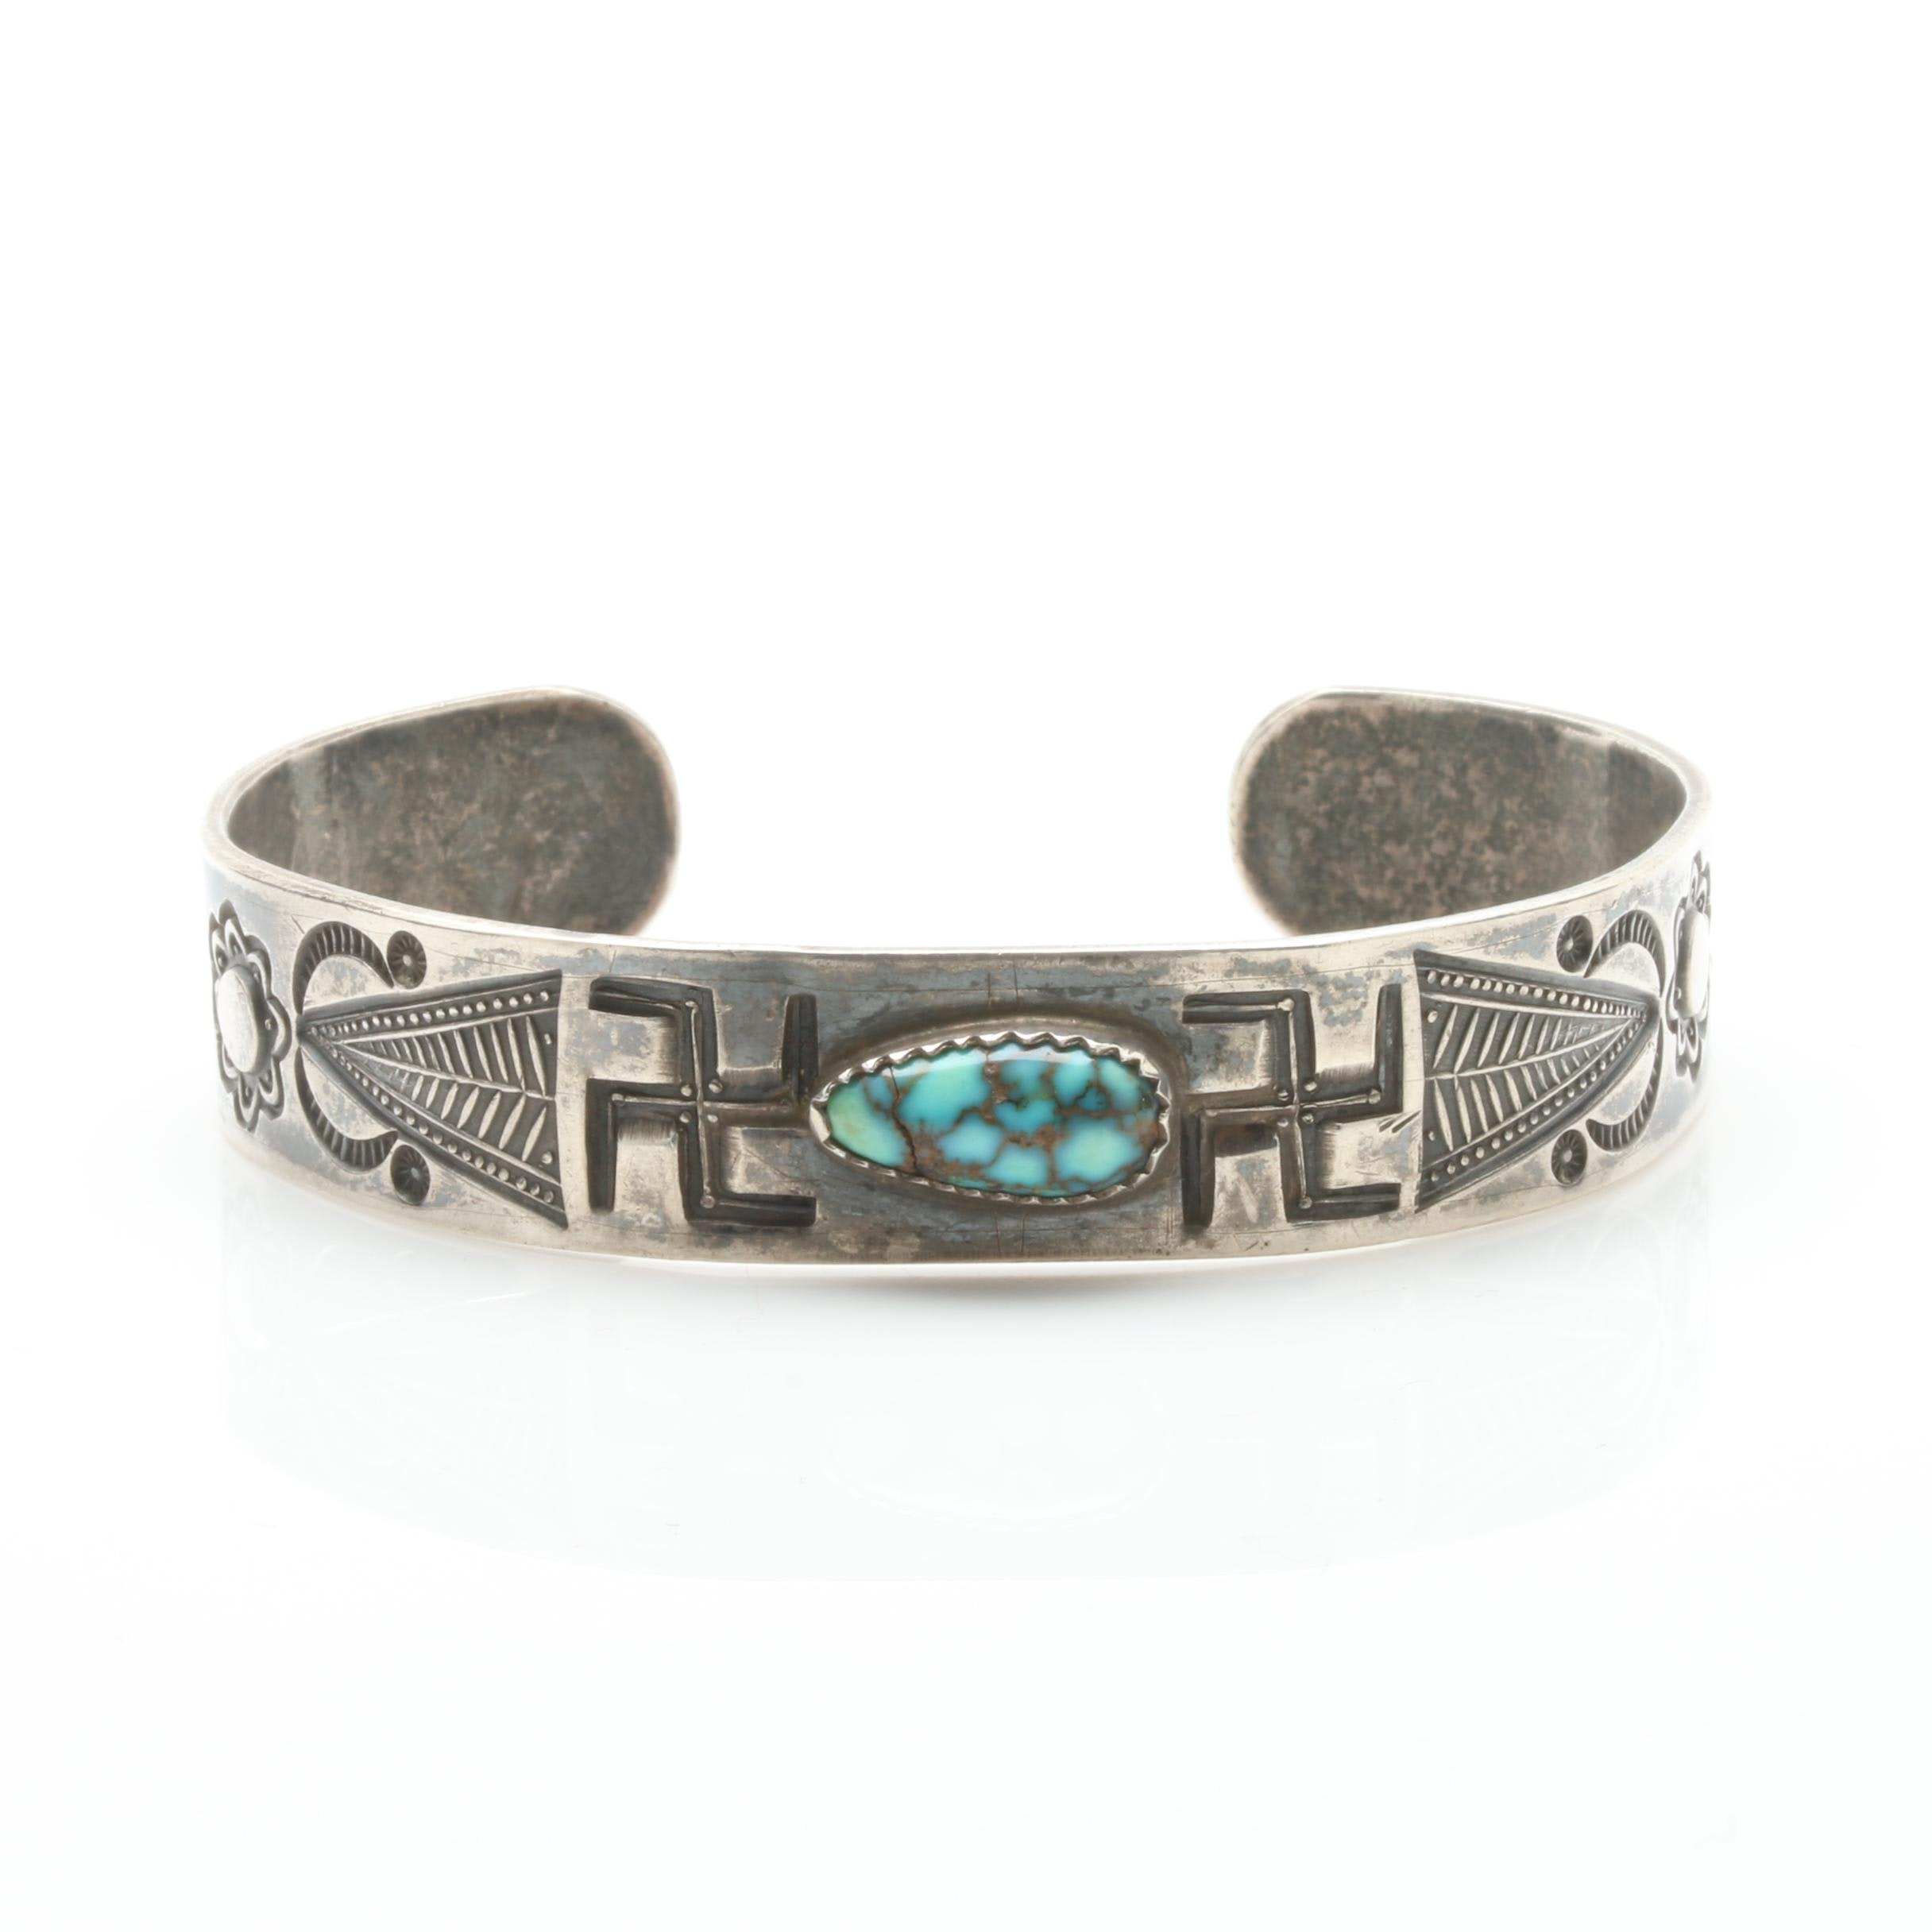 Fred Harvey Railroad Era Sterling Silver Spiderweb Turquoise Cuff Bracelet